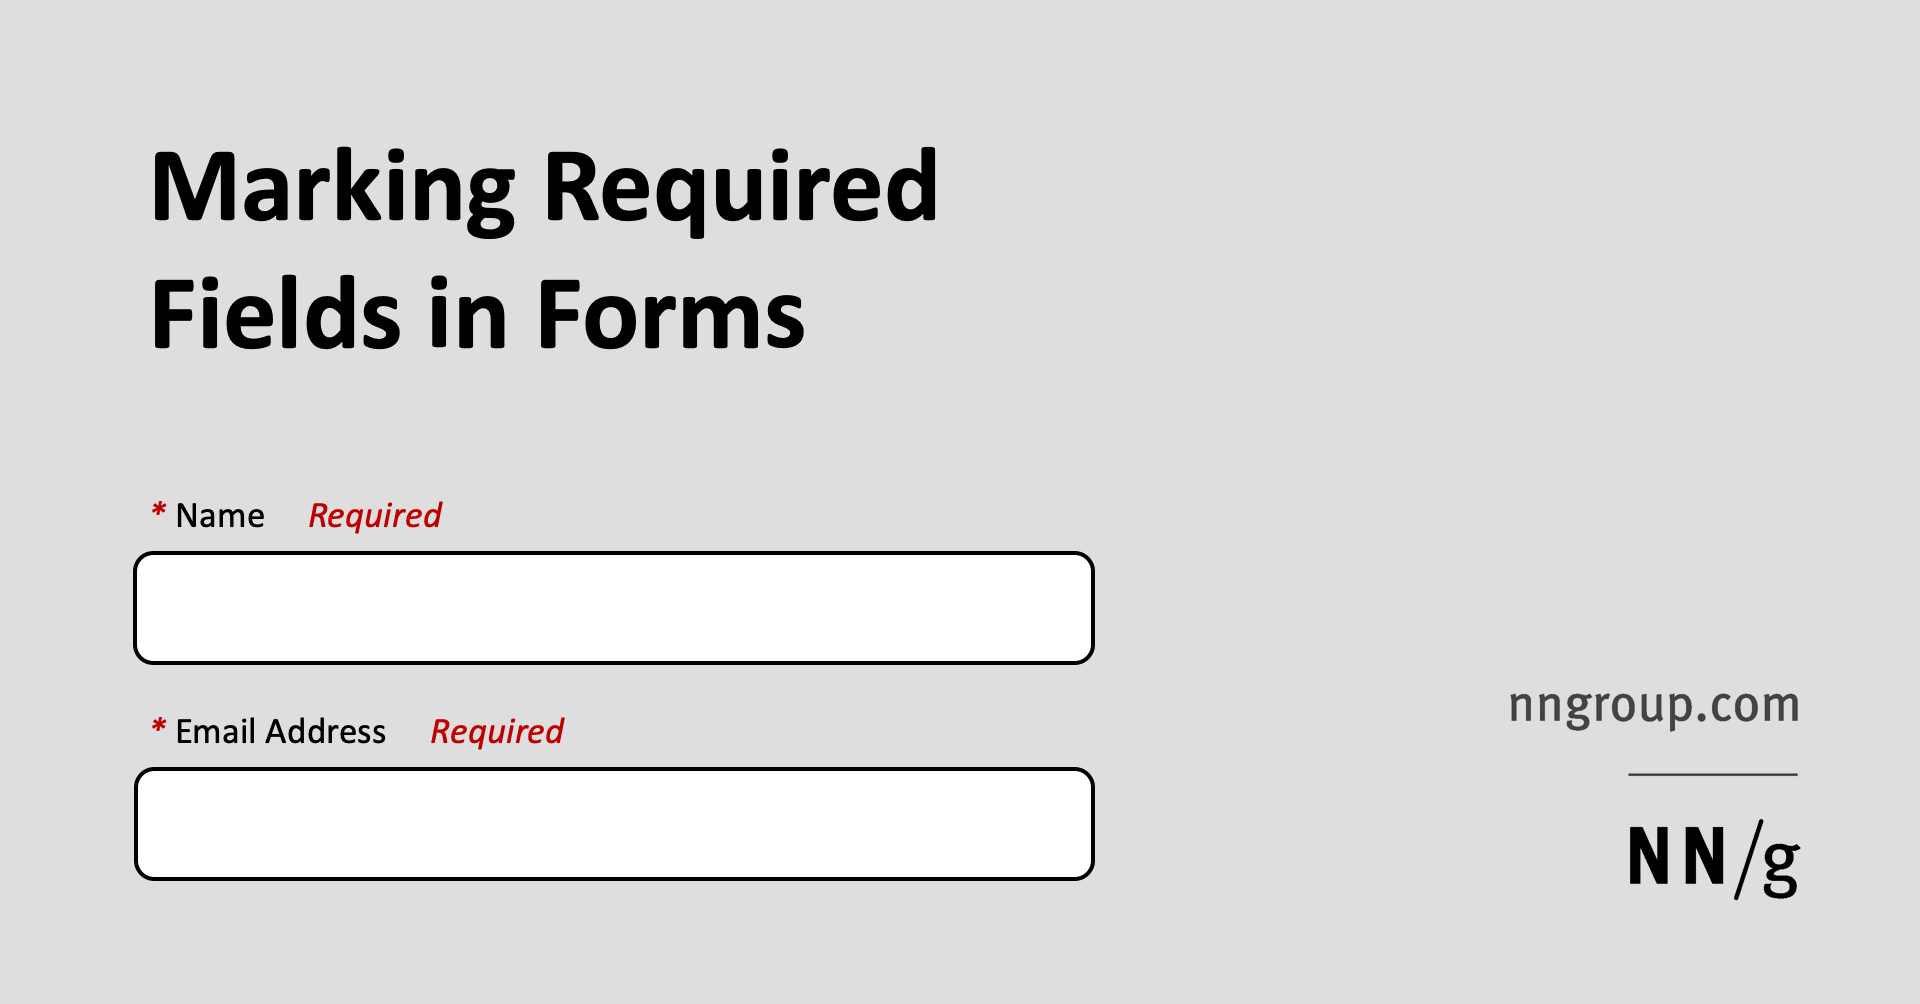 Marking Required Fields in Forms